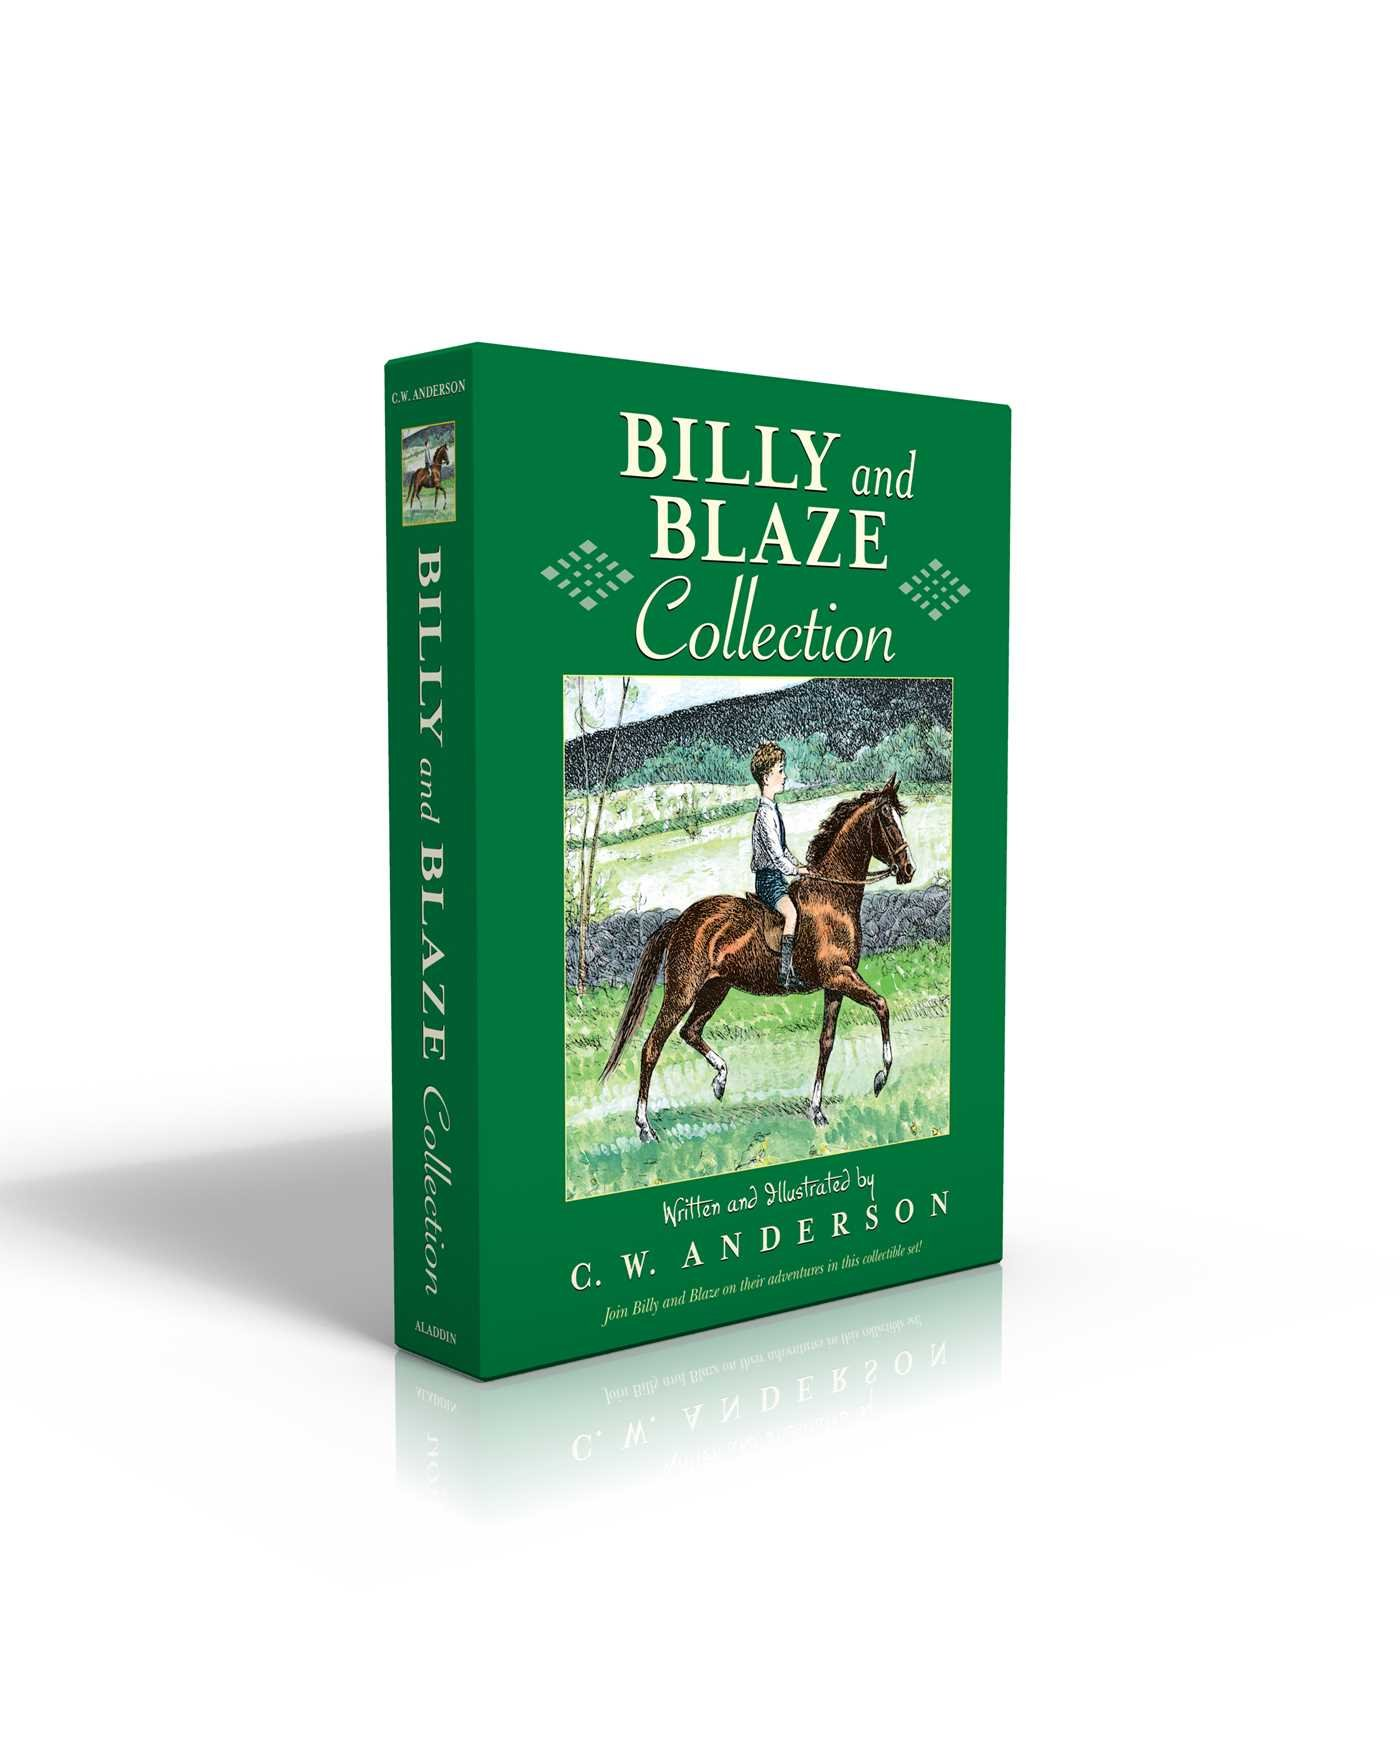 Billy and Blaze Collection: Billy and Blaze; Blaze and the Forest Fire; Blaze Finds the Trail; Blaze and Thunderbolt; Blaze and the Mountain Lion; ... Shows the Way; Blaze Finds Forgotten Roads by Aladdin (Image #1)